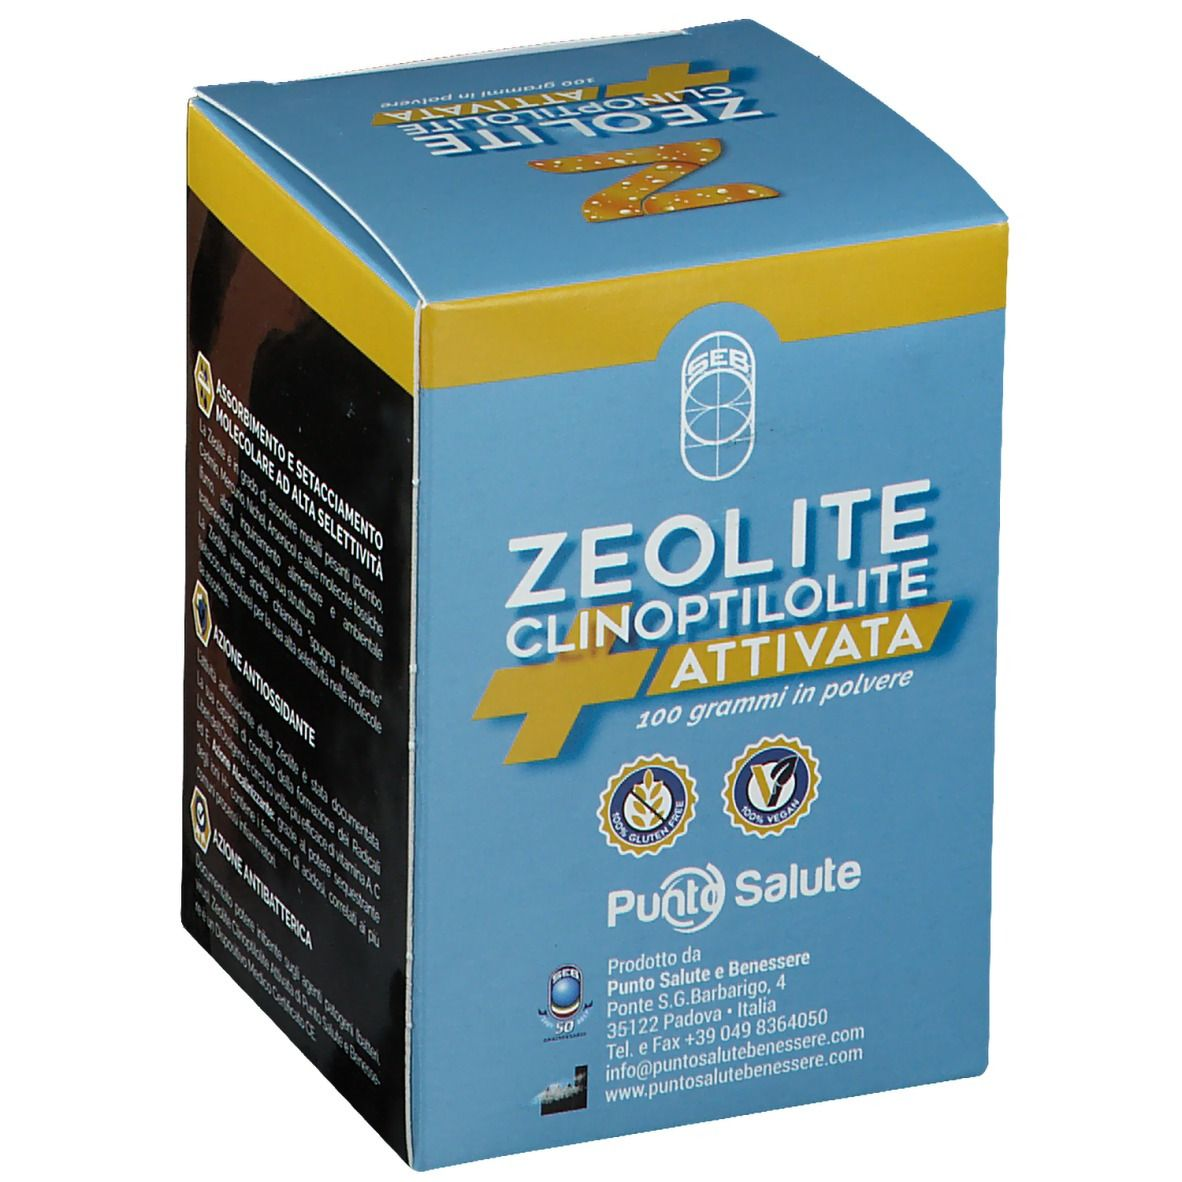 Zeolite Clinoptilolite Attivata 100 G 100 G Shop Farmacia It